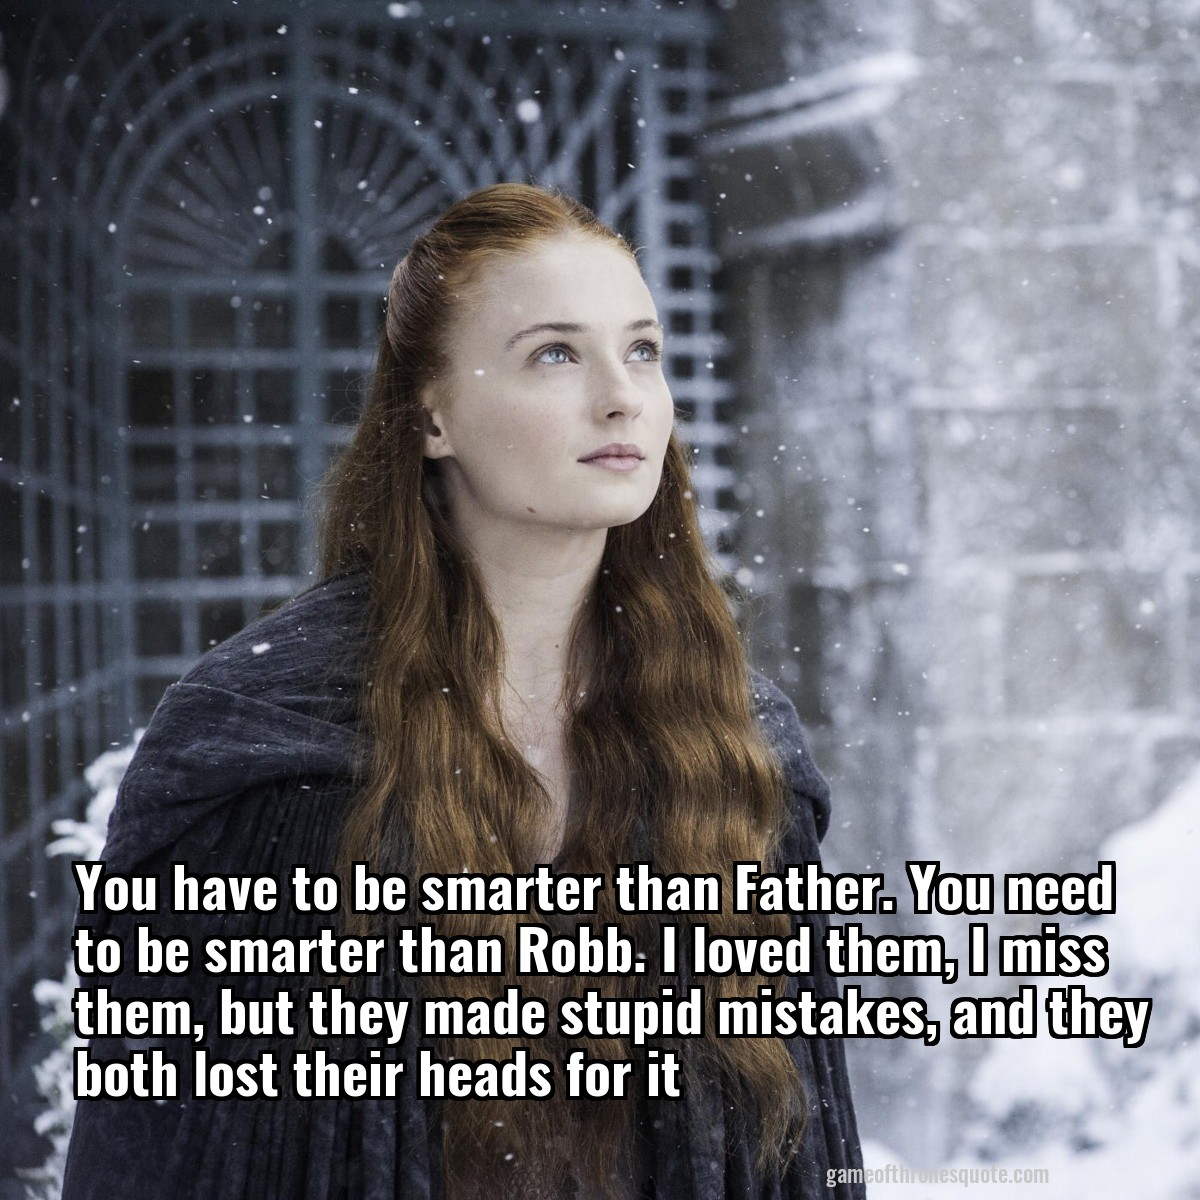 You have to be smarter than Father. You need to be smarter than Robb. I loved them, I miss them, but they made stupid mistakes, and they both lost their heads for it